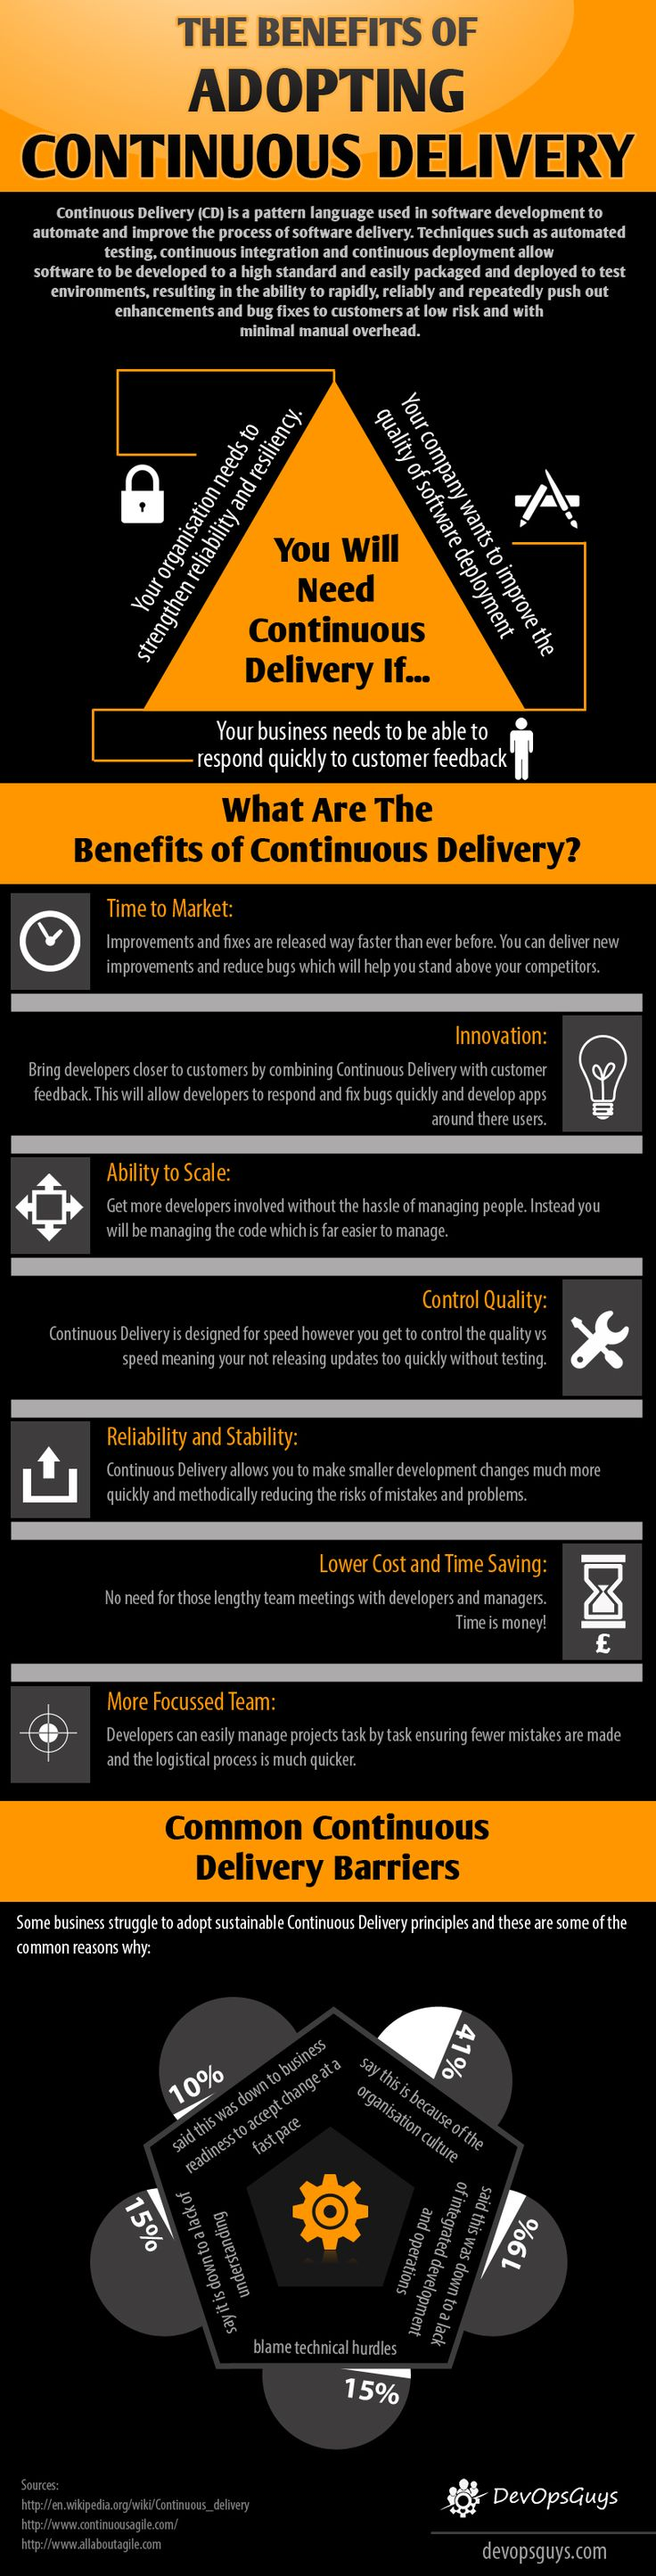 Continuous Delivery benefits infographic #devops - thanks to @DevOpsGuys